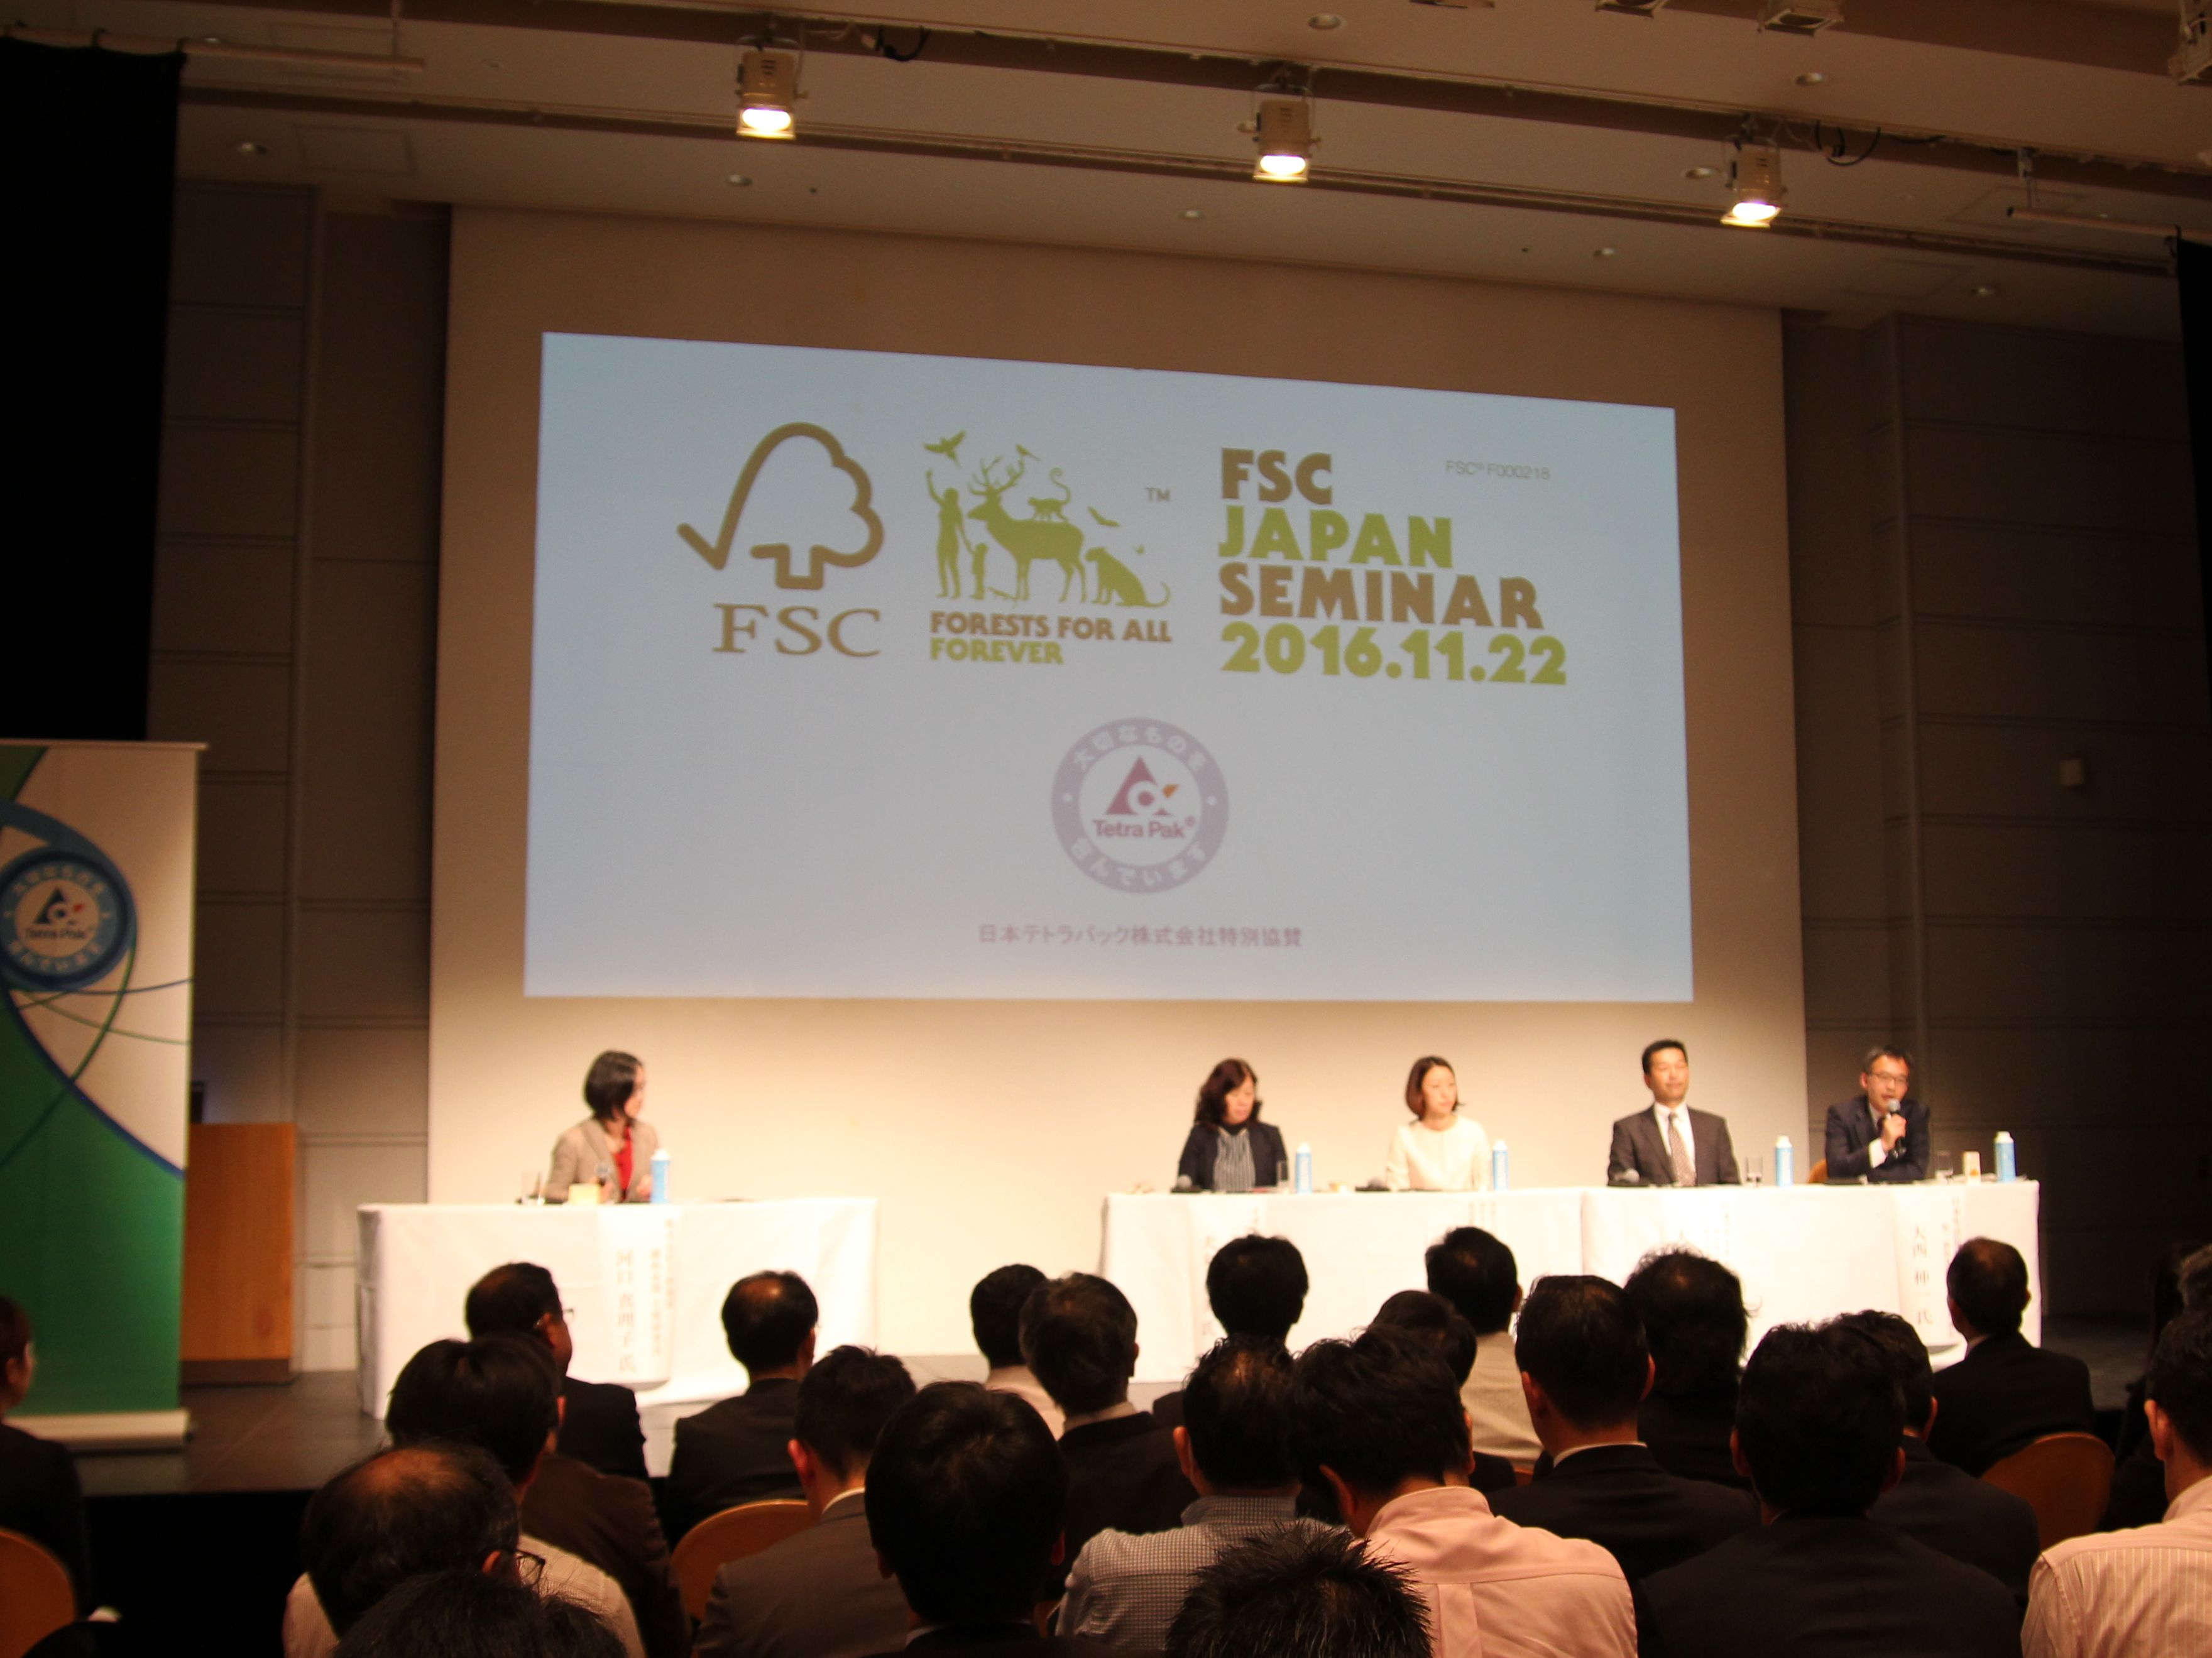 JCCU took part in the FSC Japan Seminar